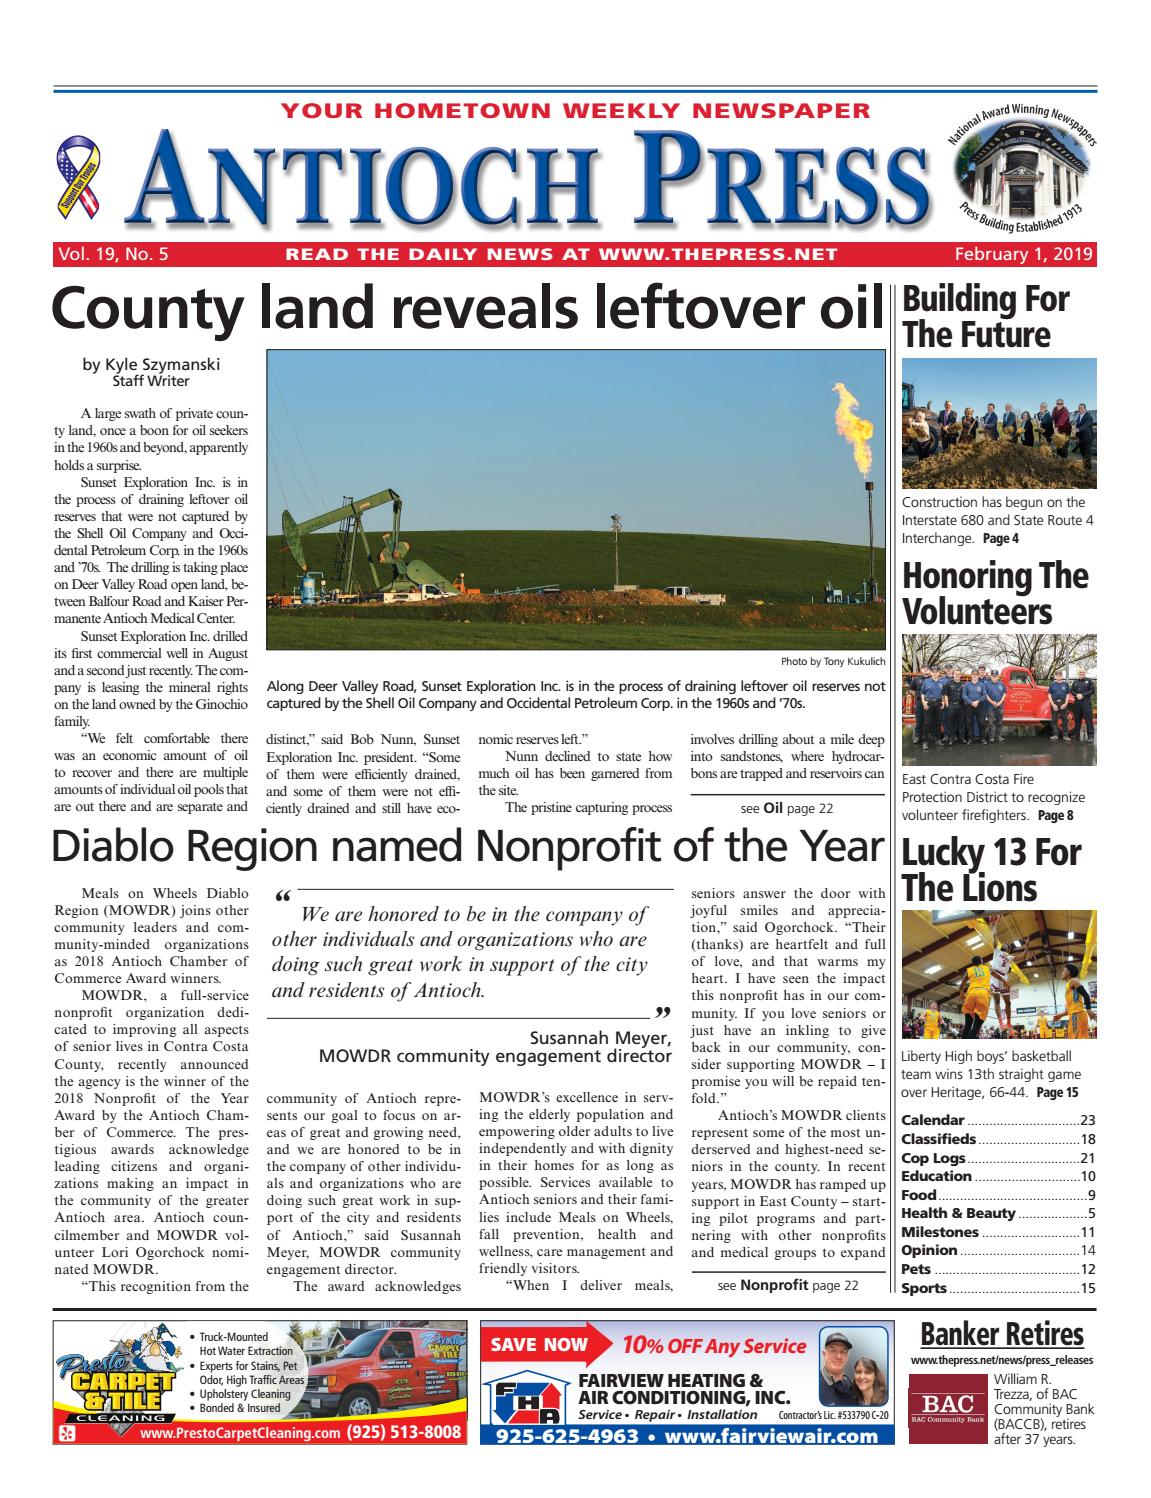 Antioch Press 02 01 19 by Brentwood Press & Publishing - issuu